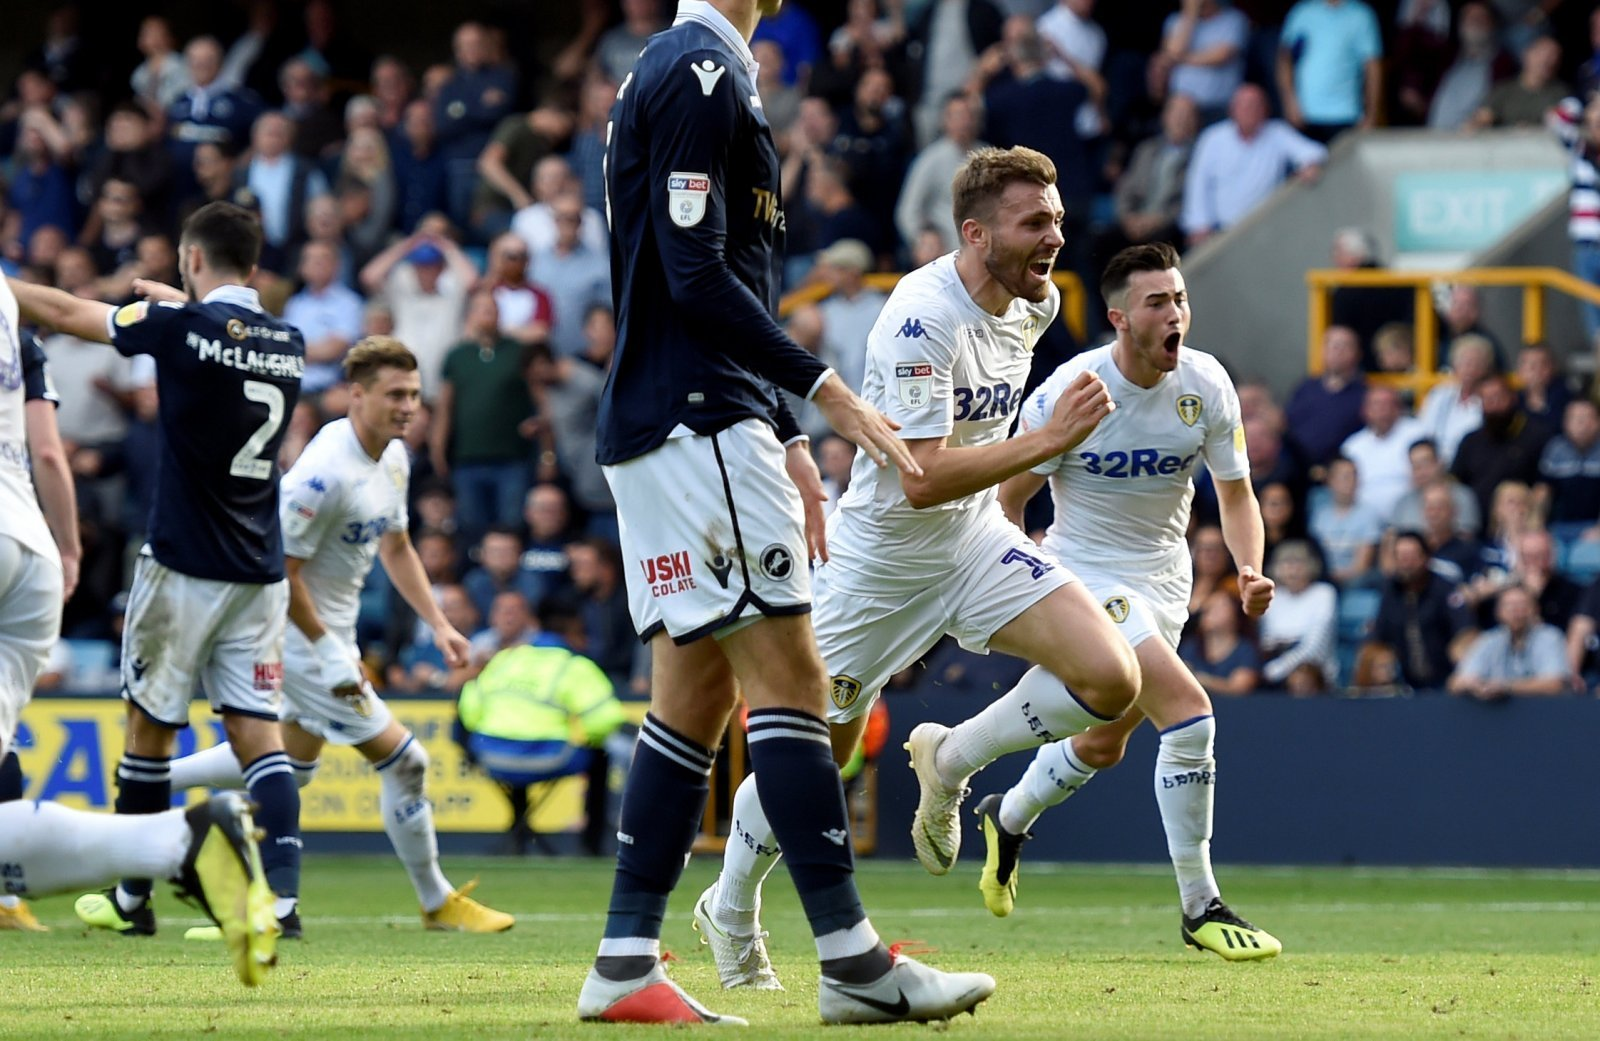 Leeds fans on Twitter weren't happy with Harrison despite Ipswich win